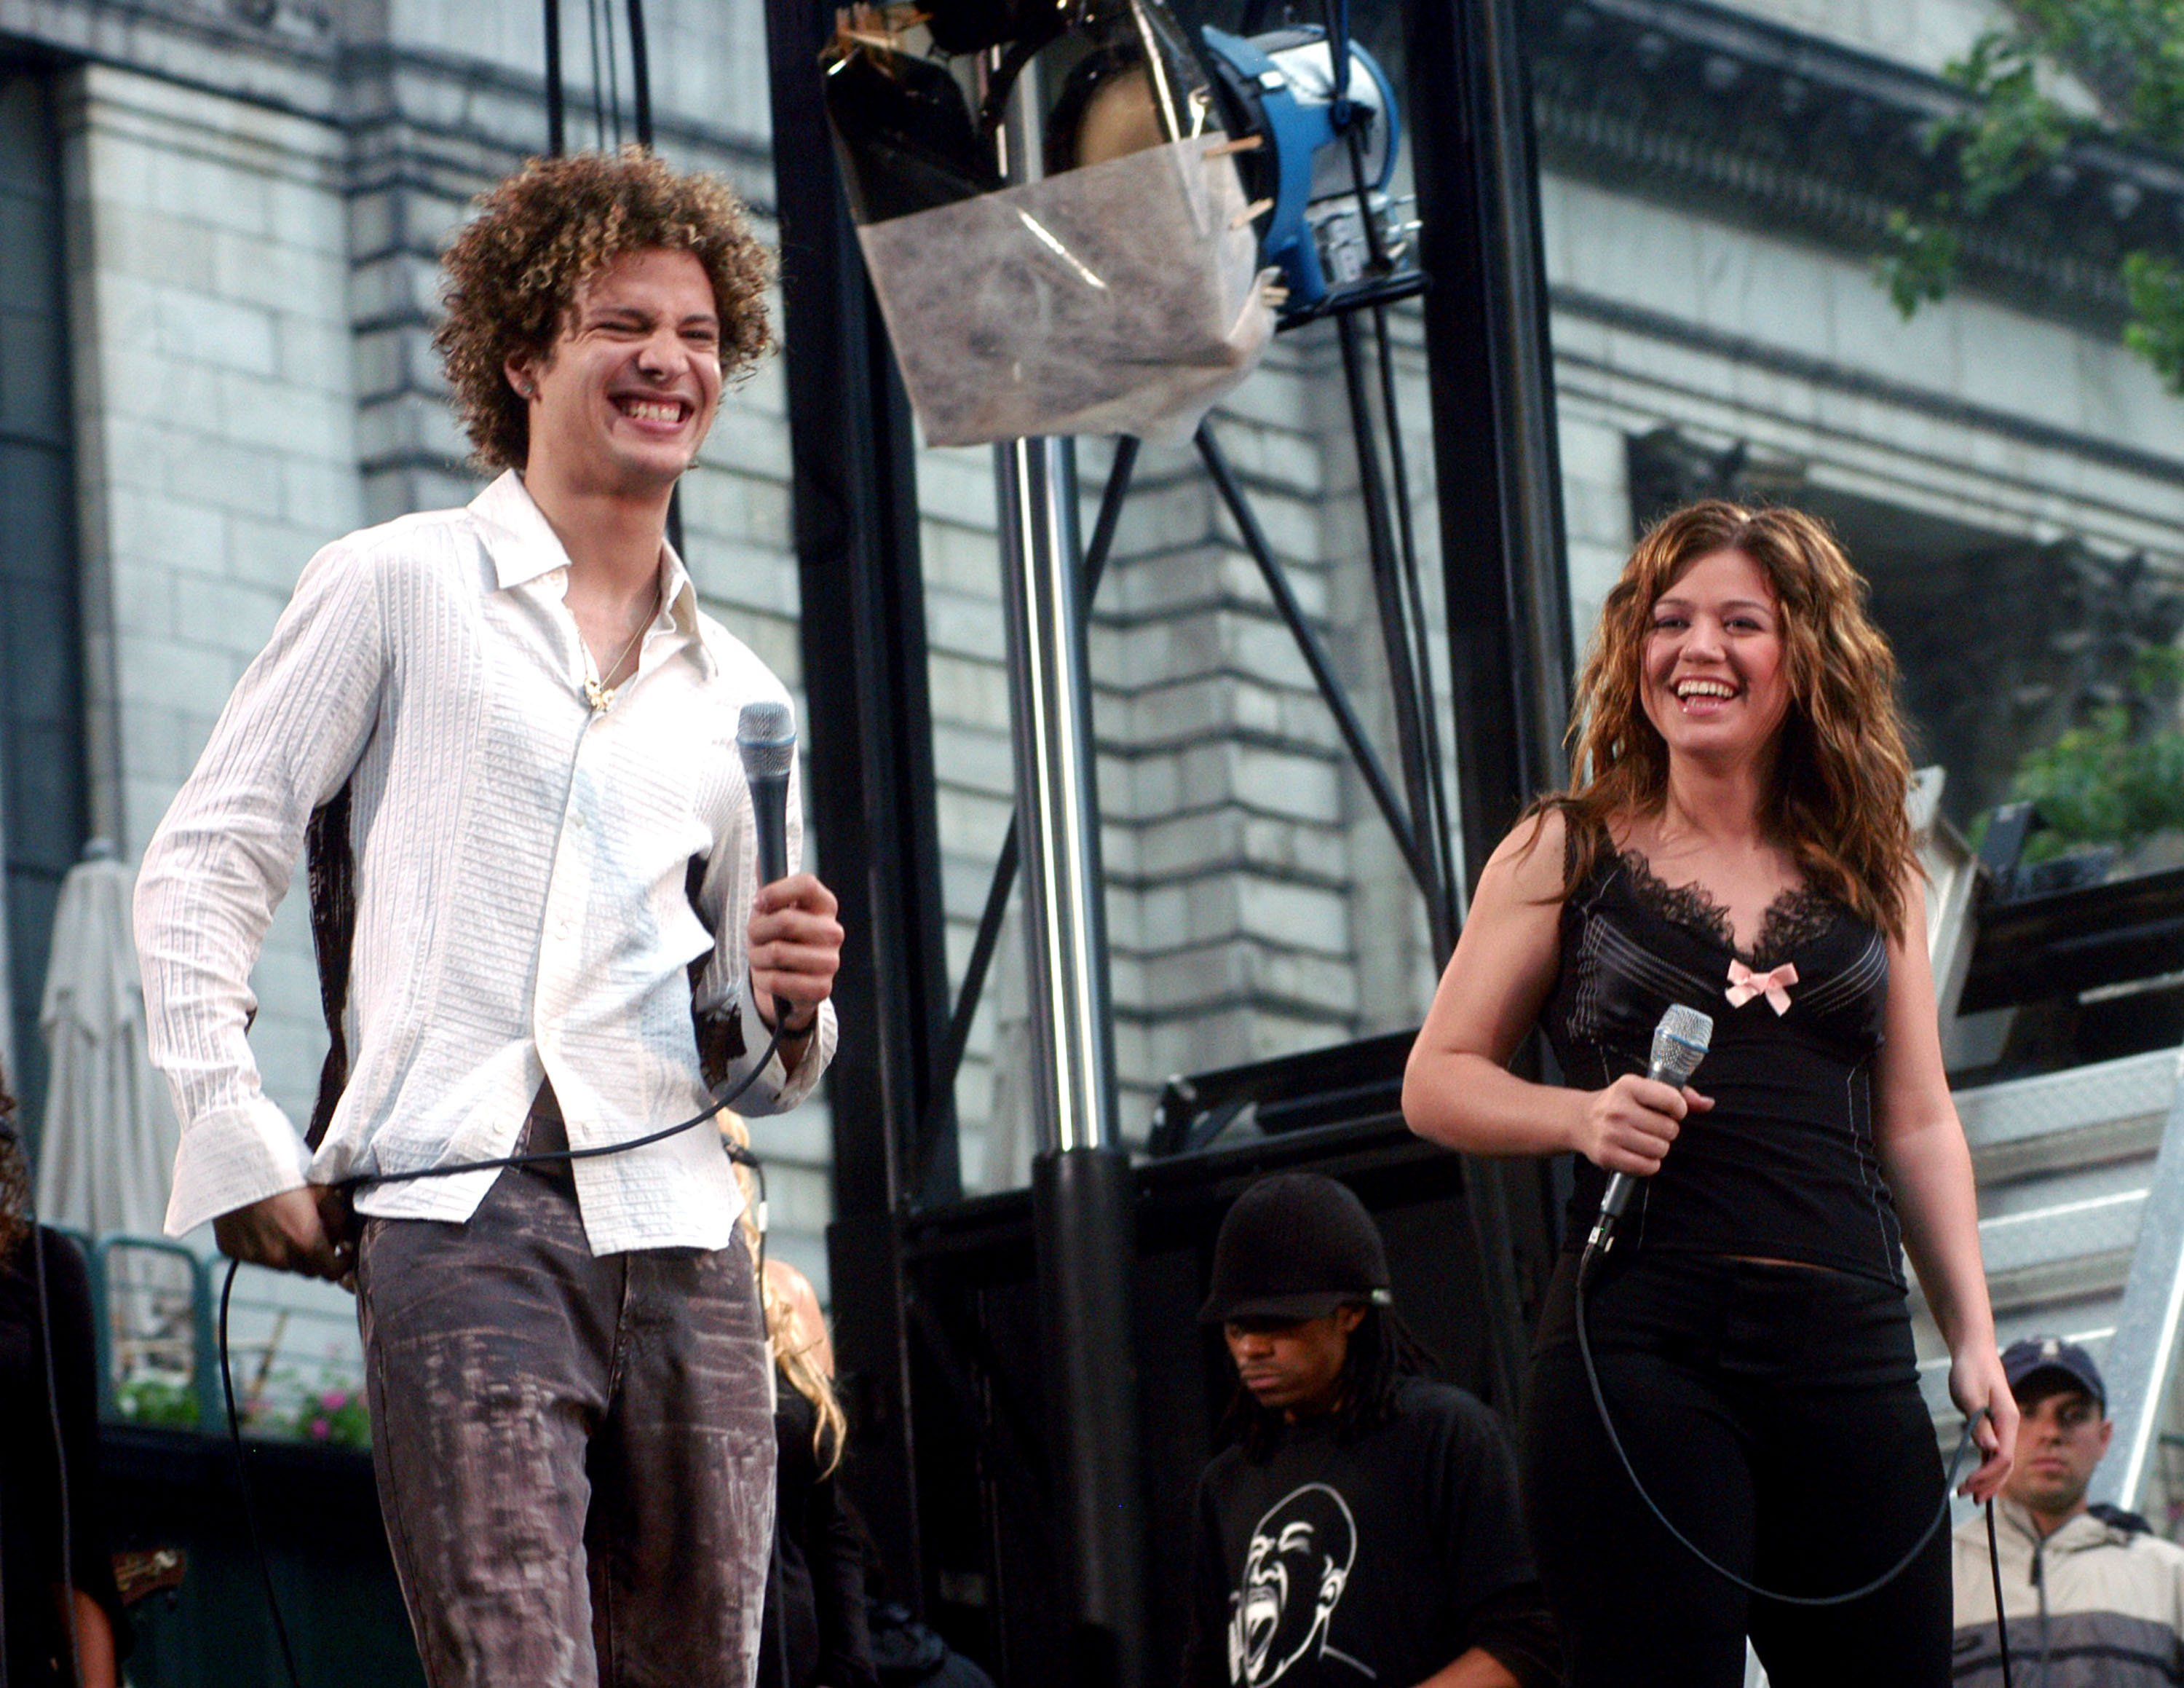 """Kelly Clarkson during her 2003 concert series of """"Good Morning America"""" with Justin Guarini in New York City. 